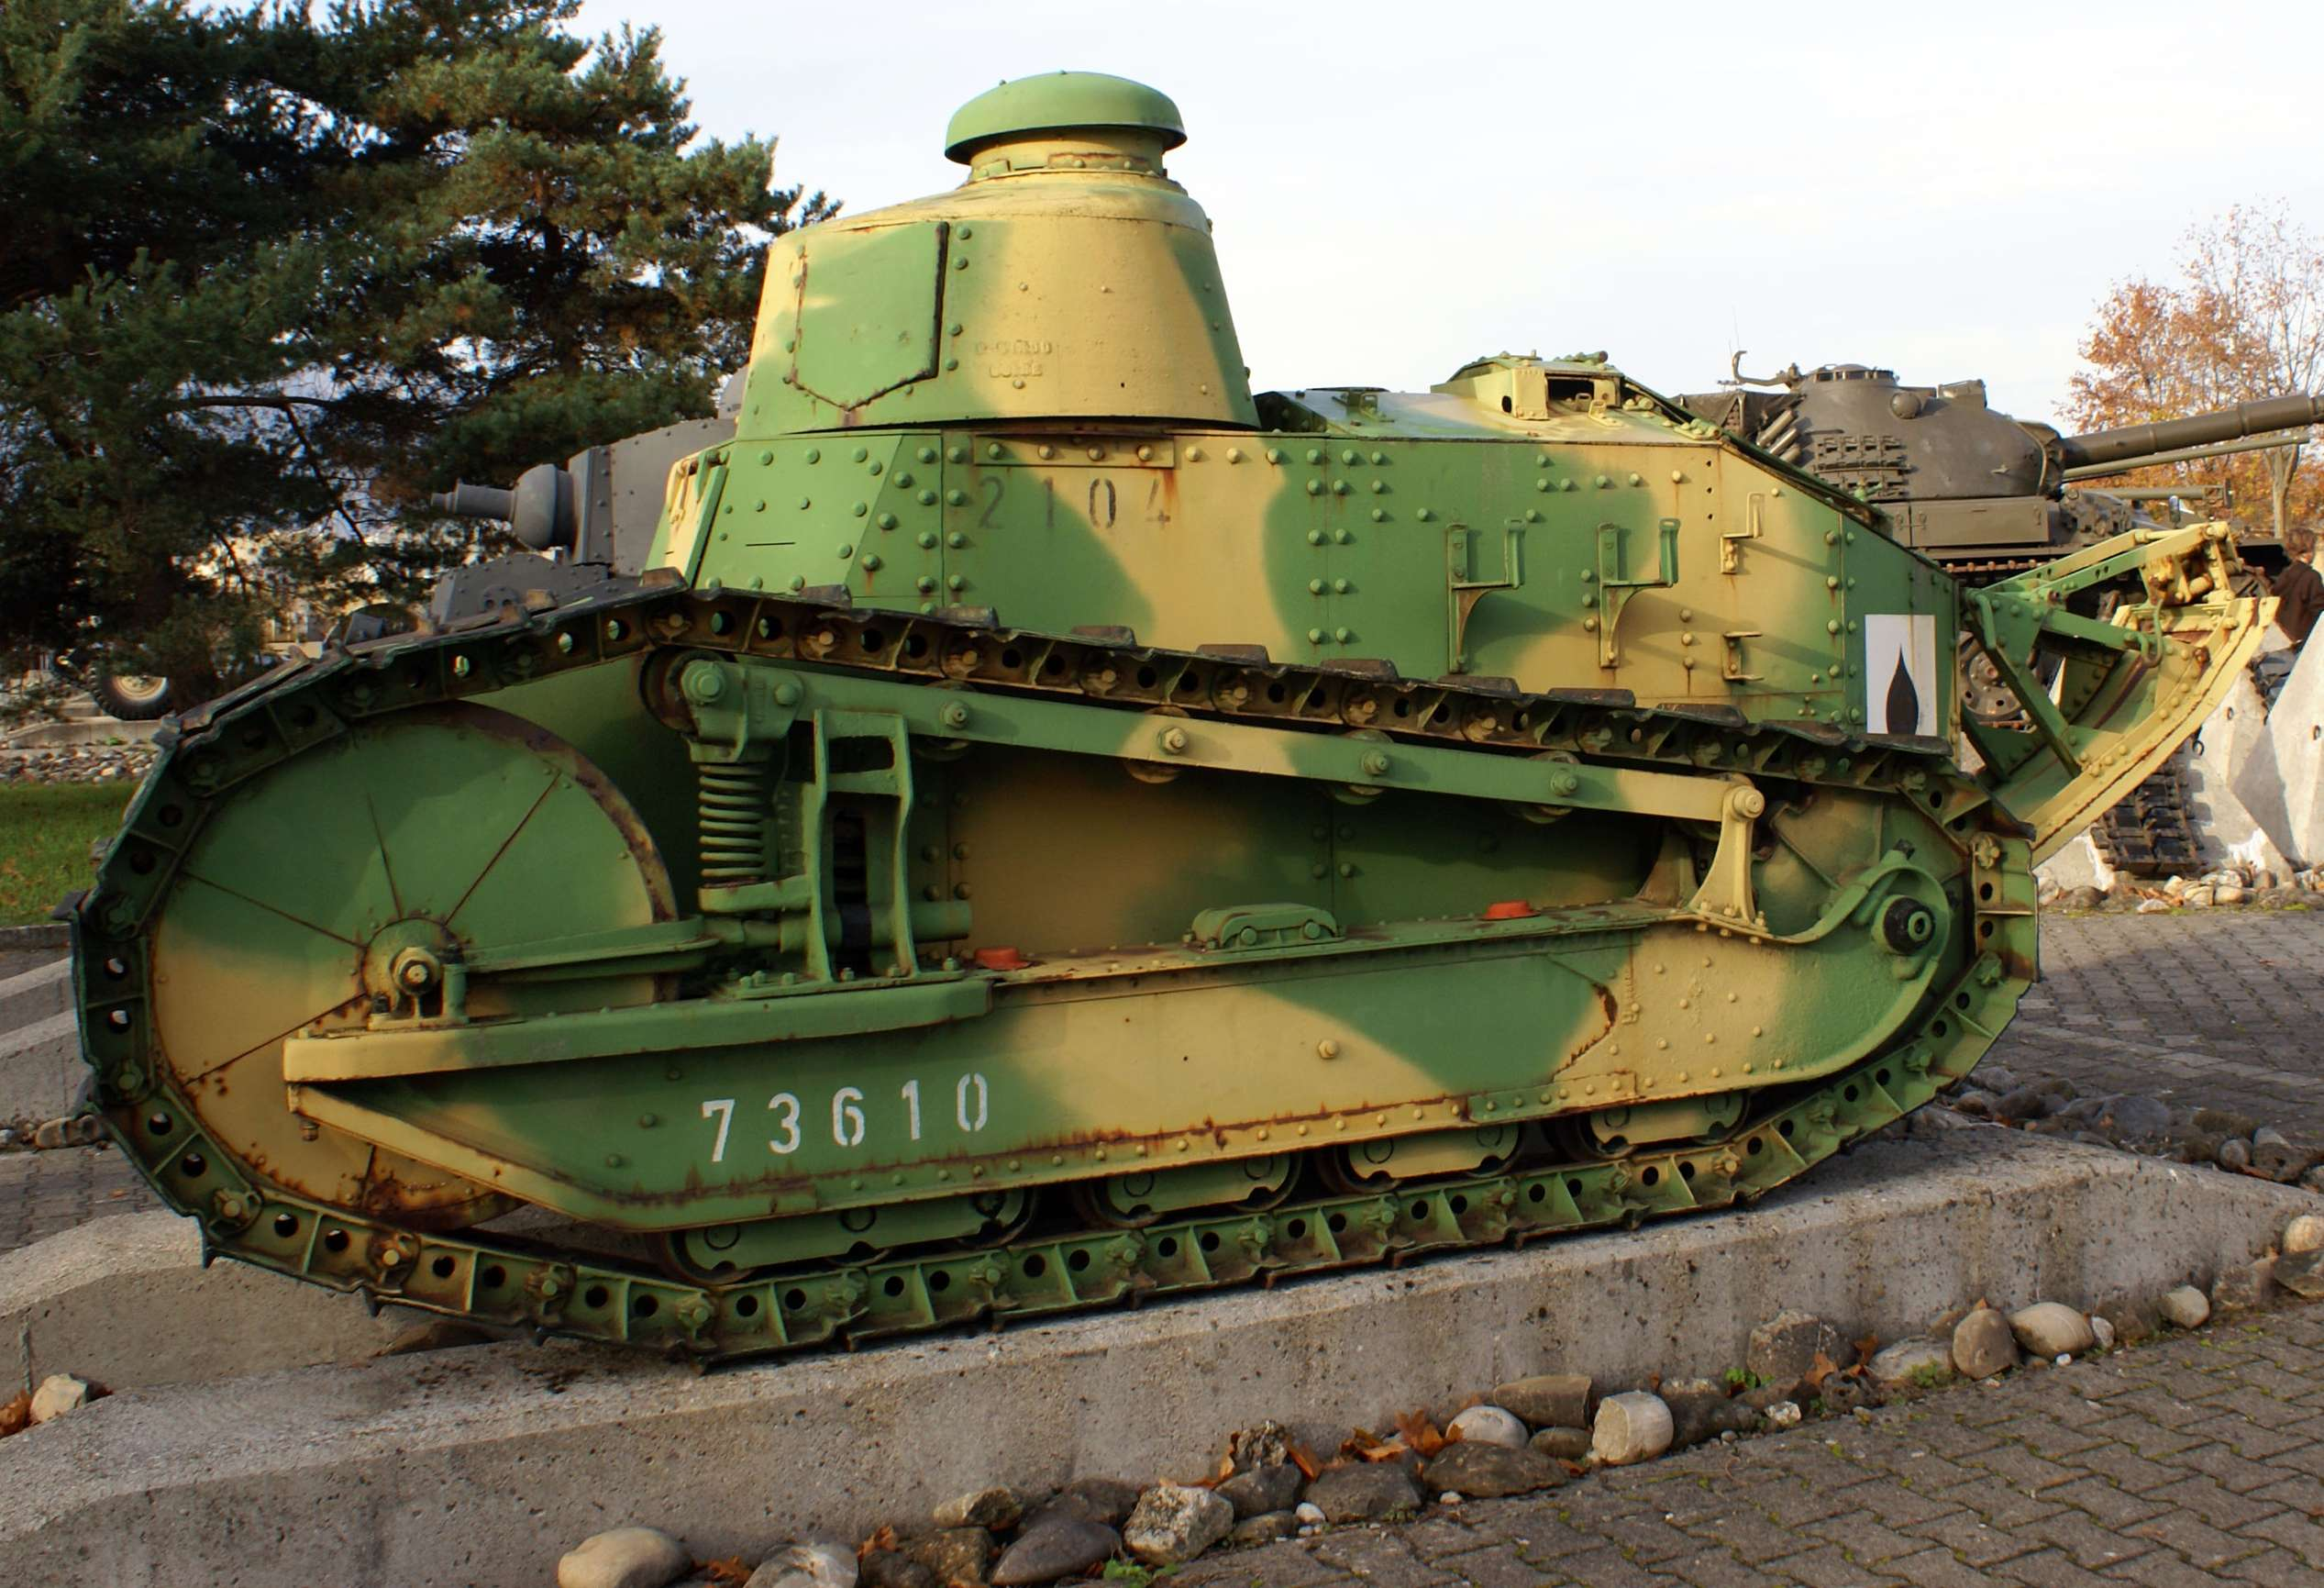 Renault FT-17 #7231105